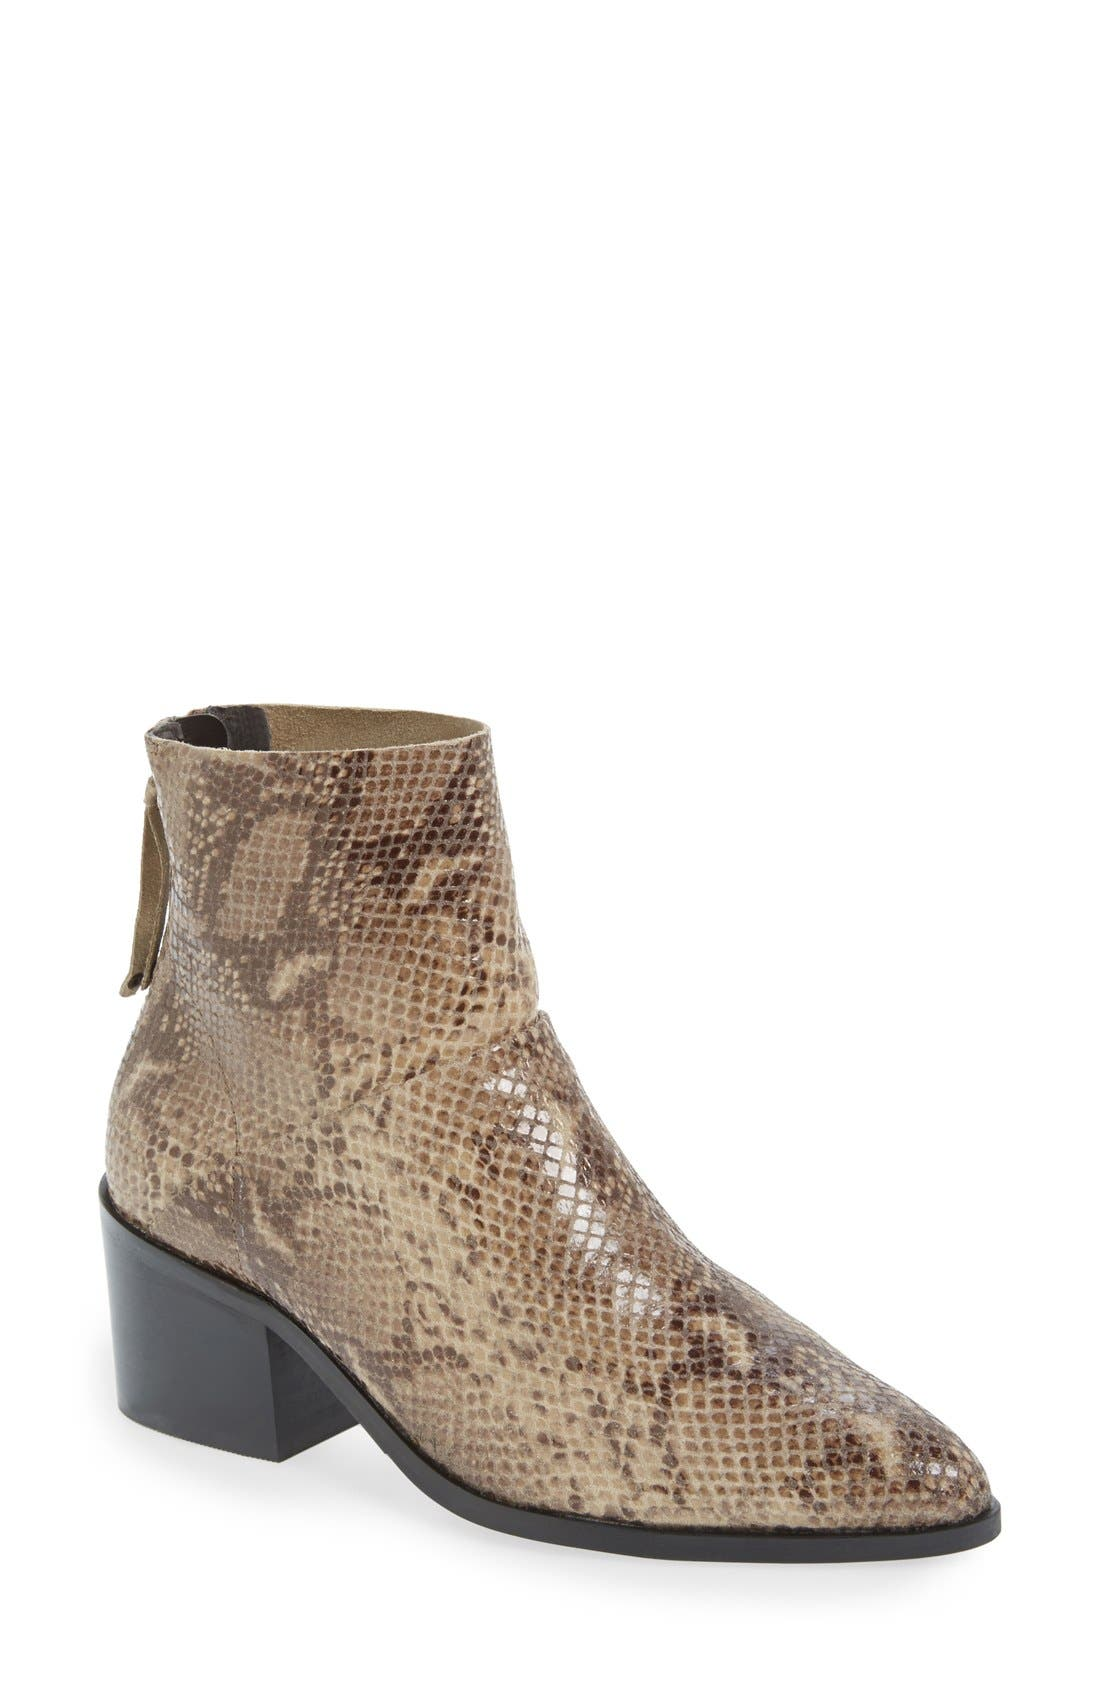 Alternate Image 1 Selected - Topshop'Midnight' Snake Embossed Ankle Boot (Women)